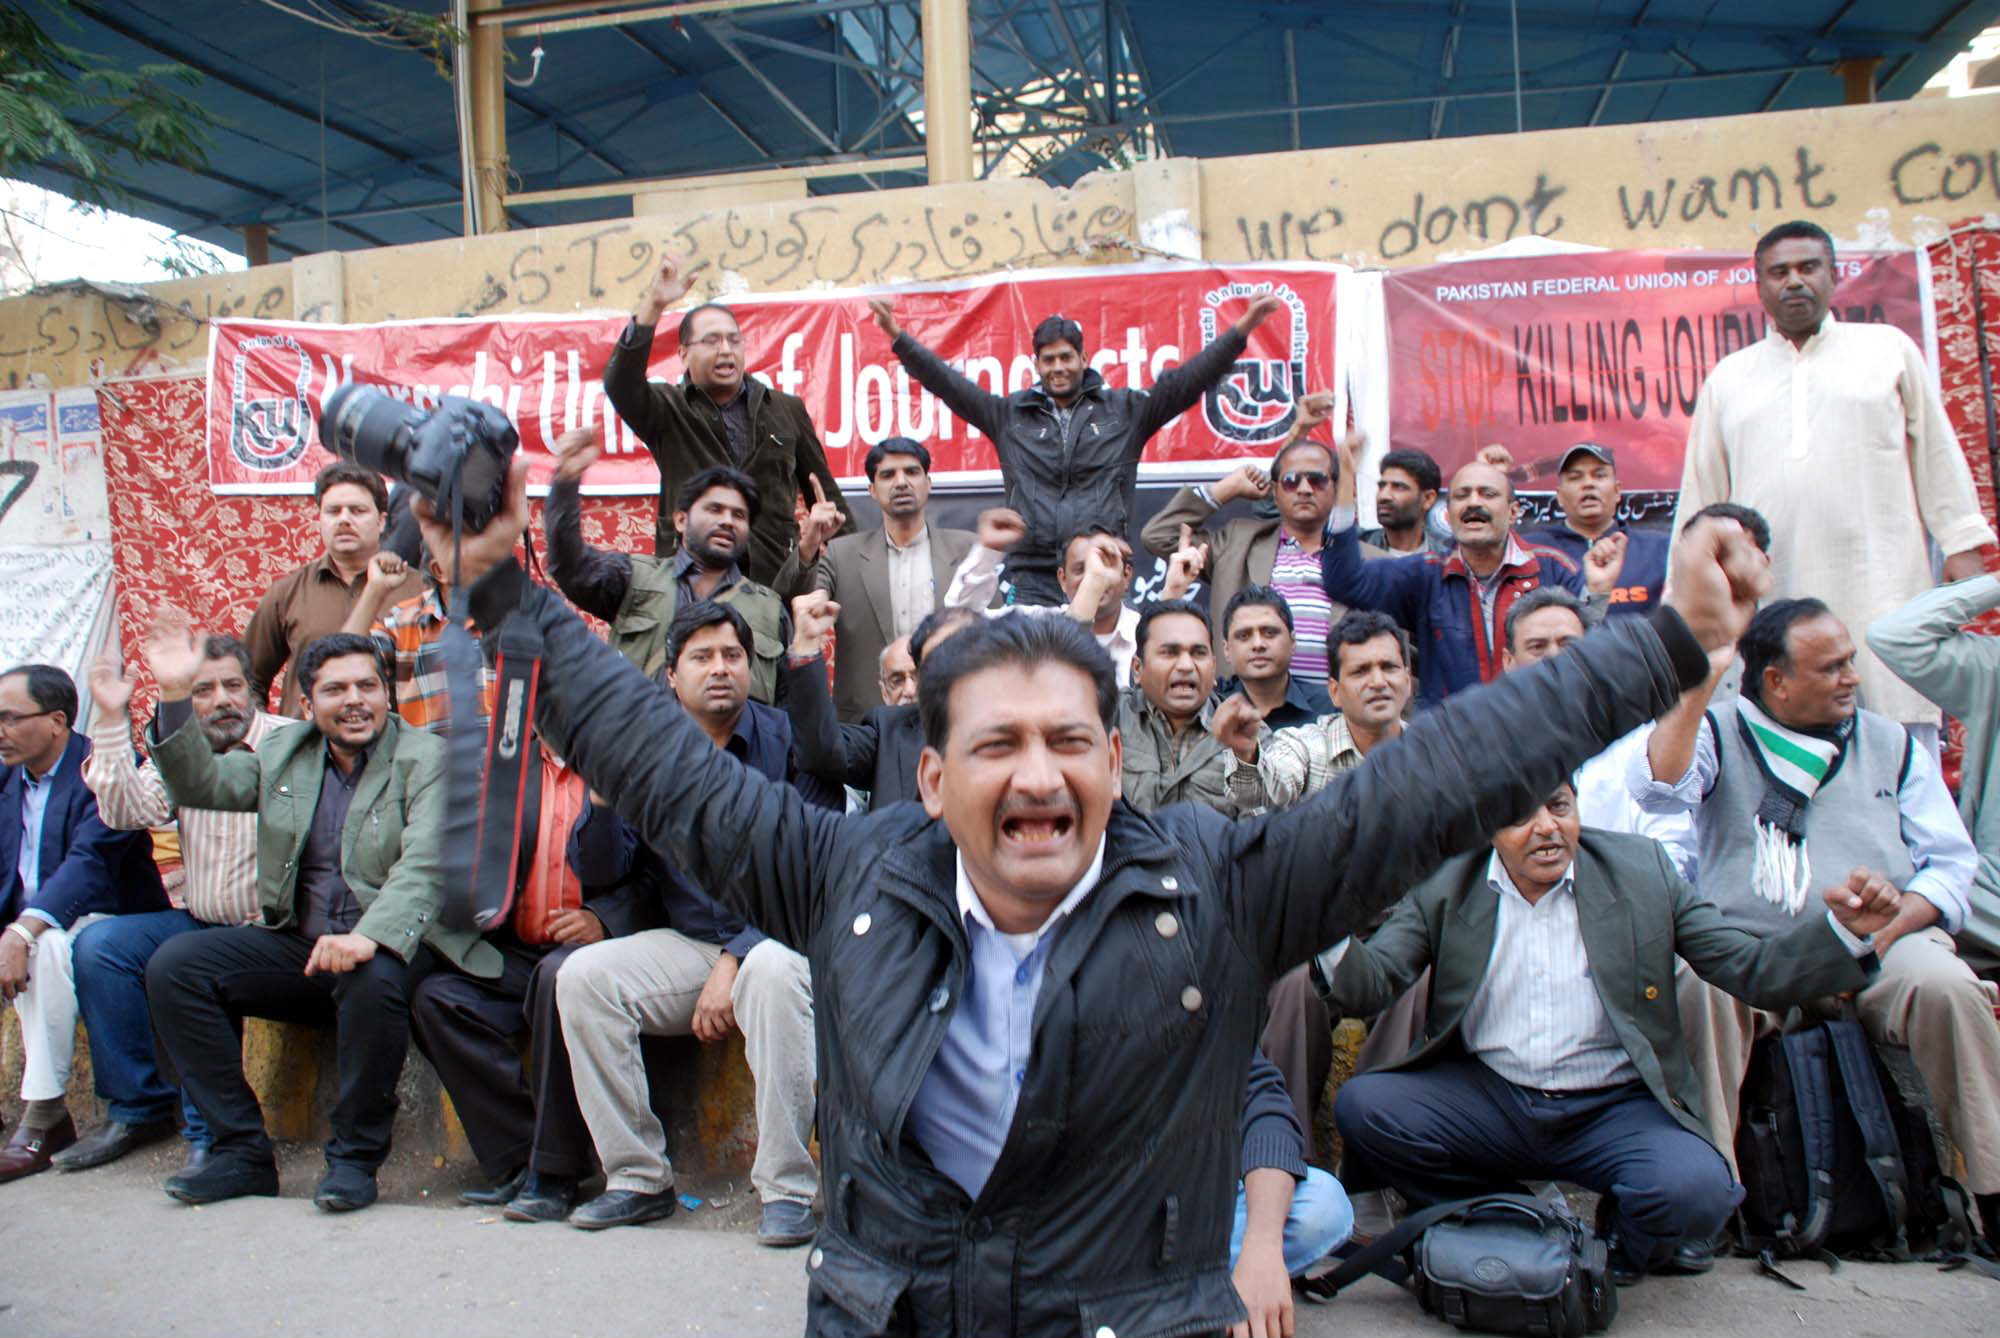 Journalists protesting in Karachi against the killing of media personnel. PHOTO: PPI